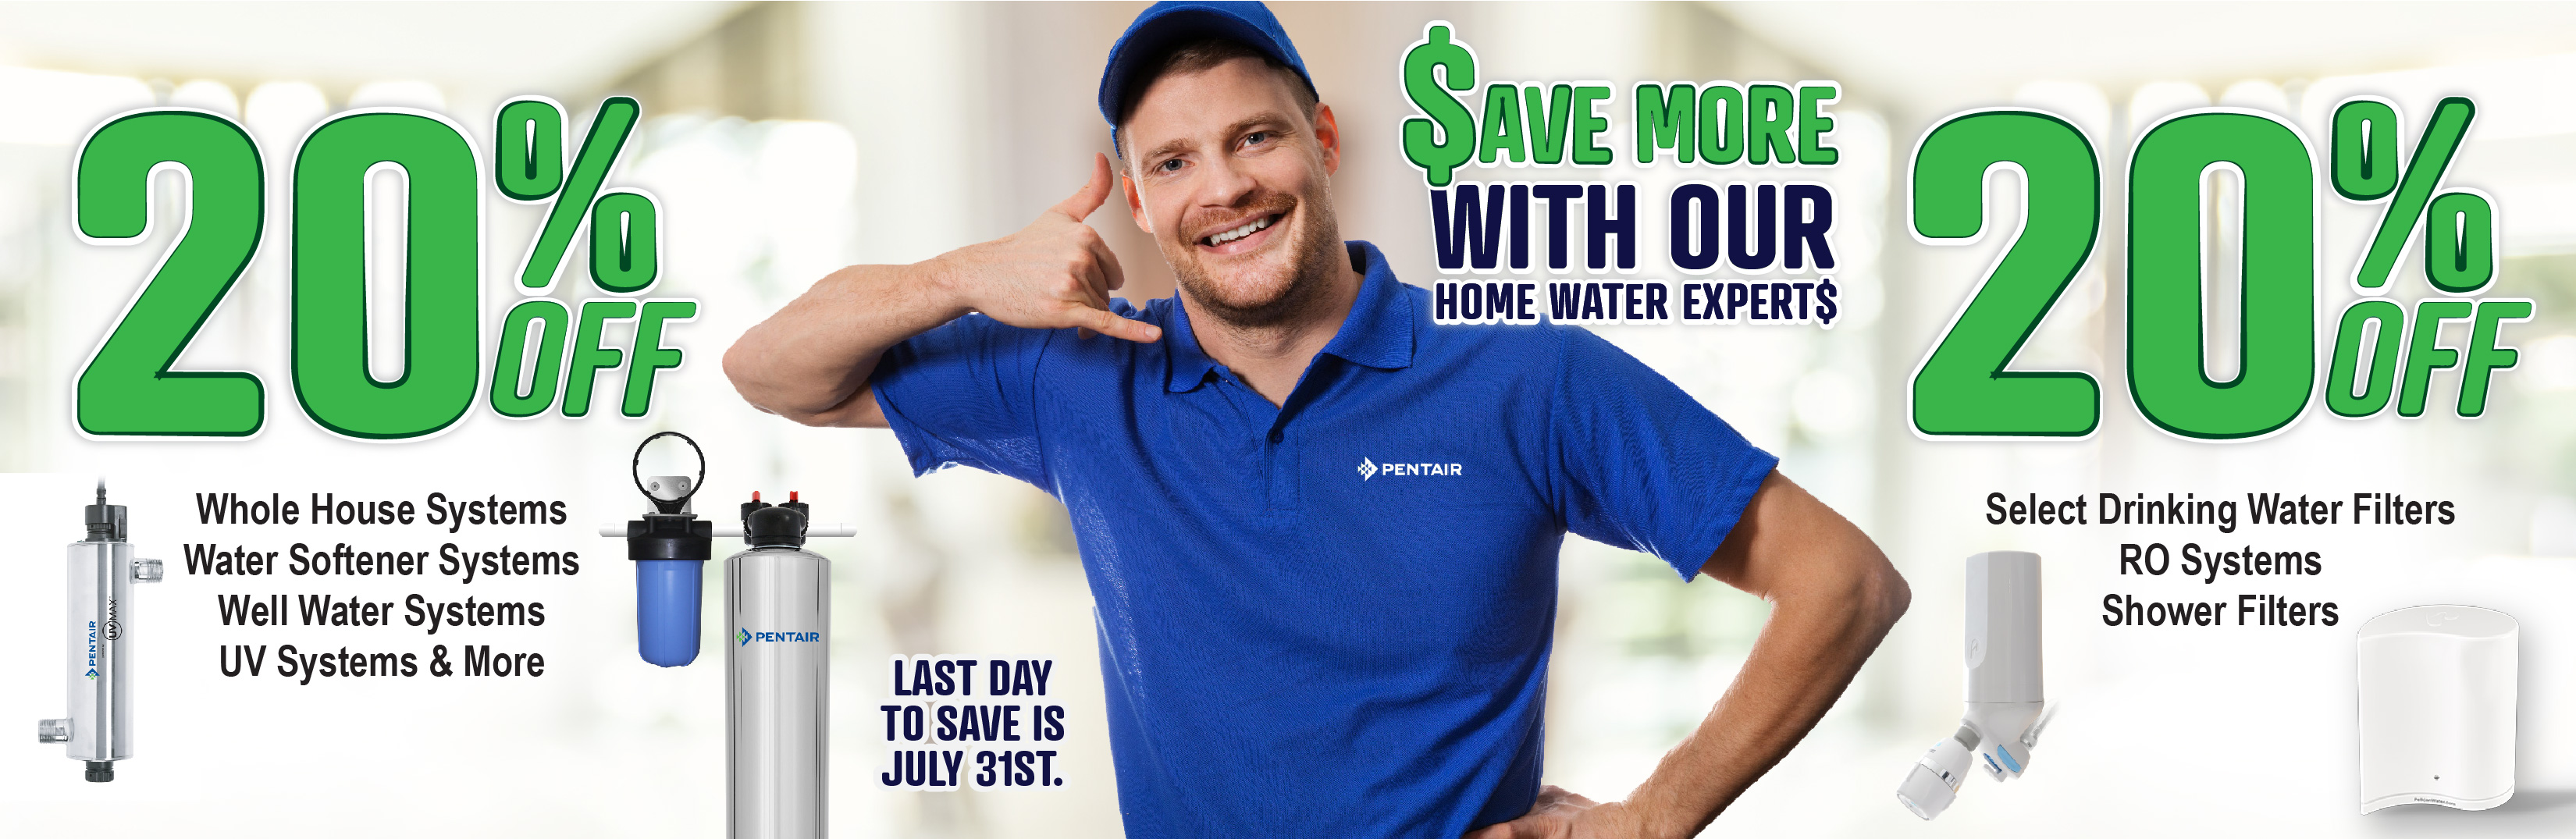 Save More with Your Home Water Experts - 20% off - ends July 31